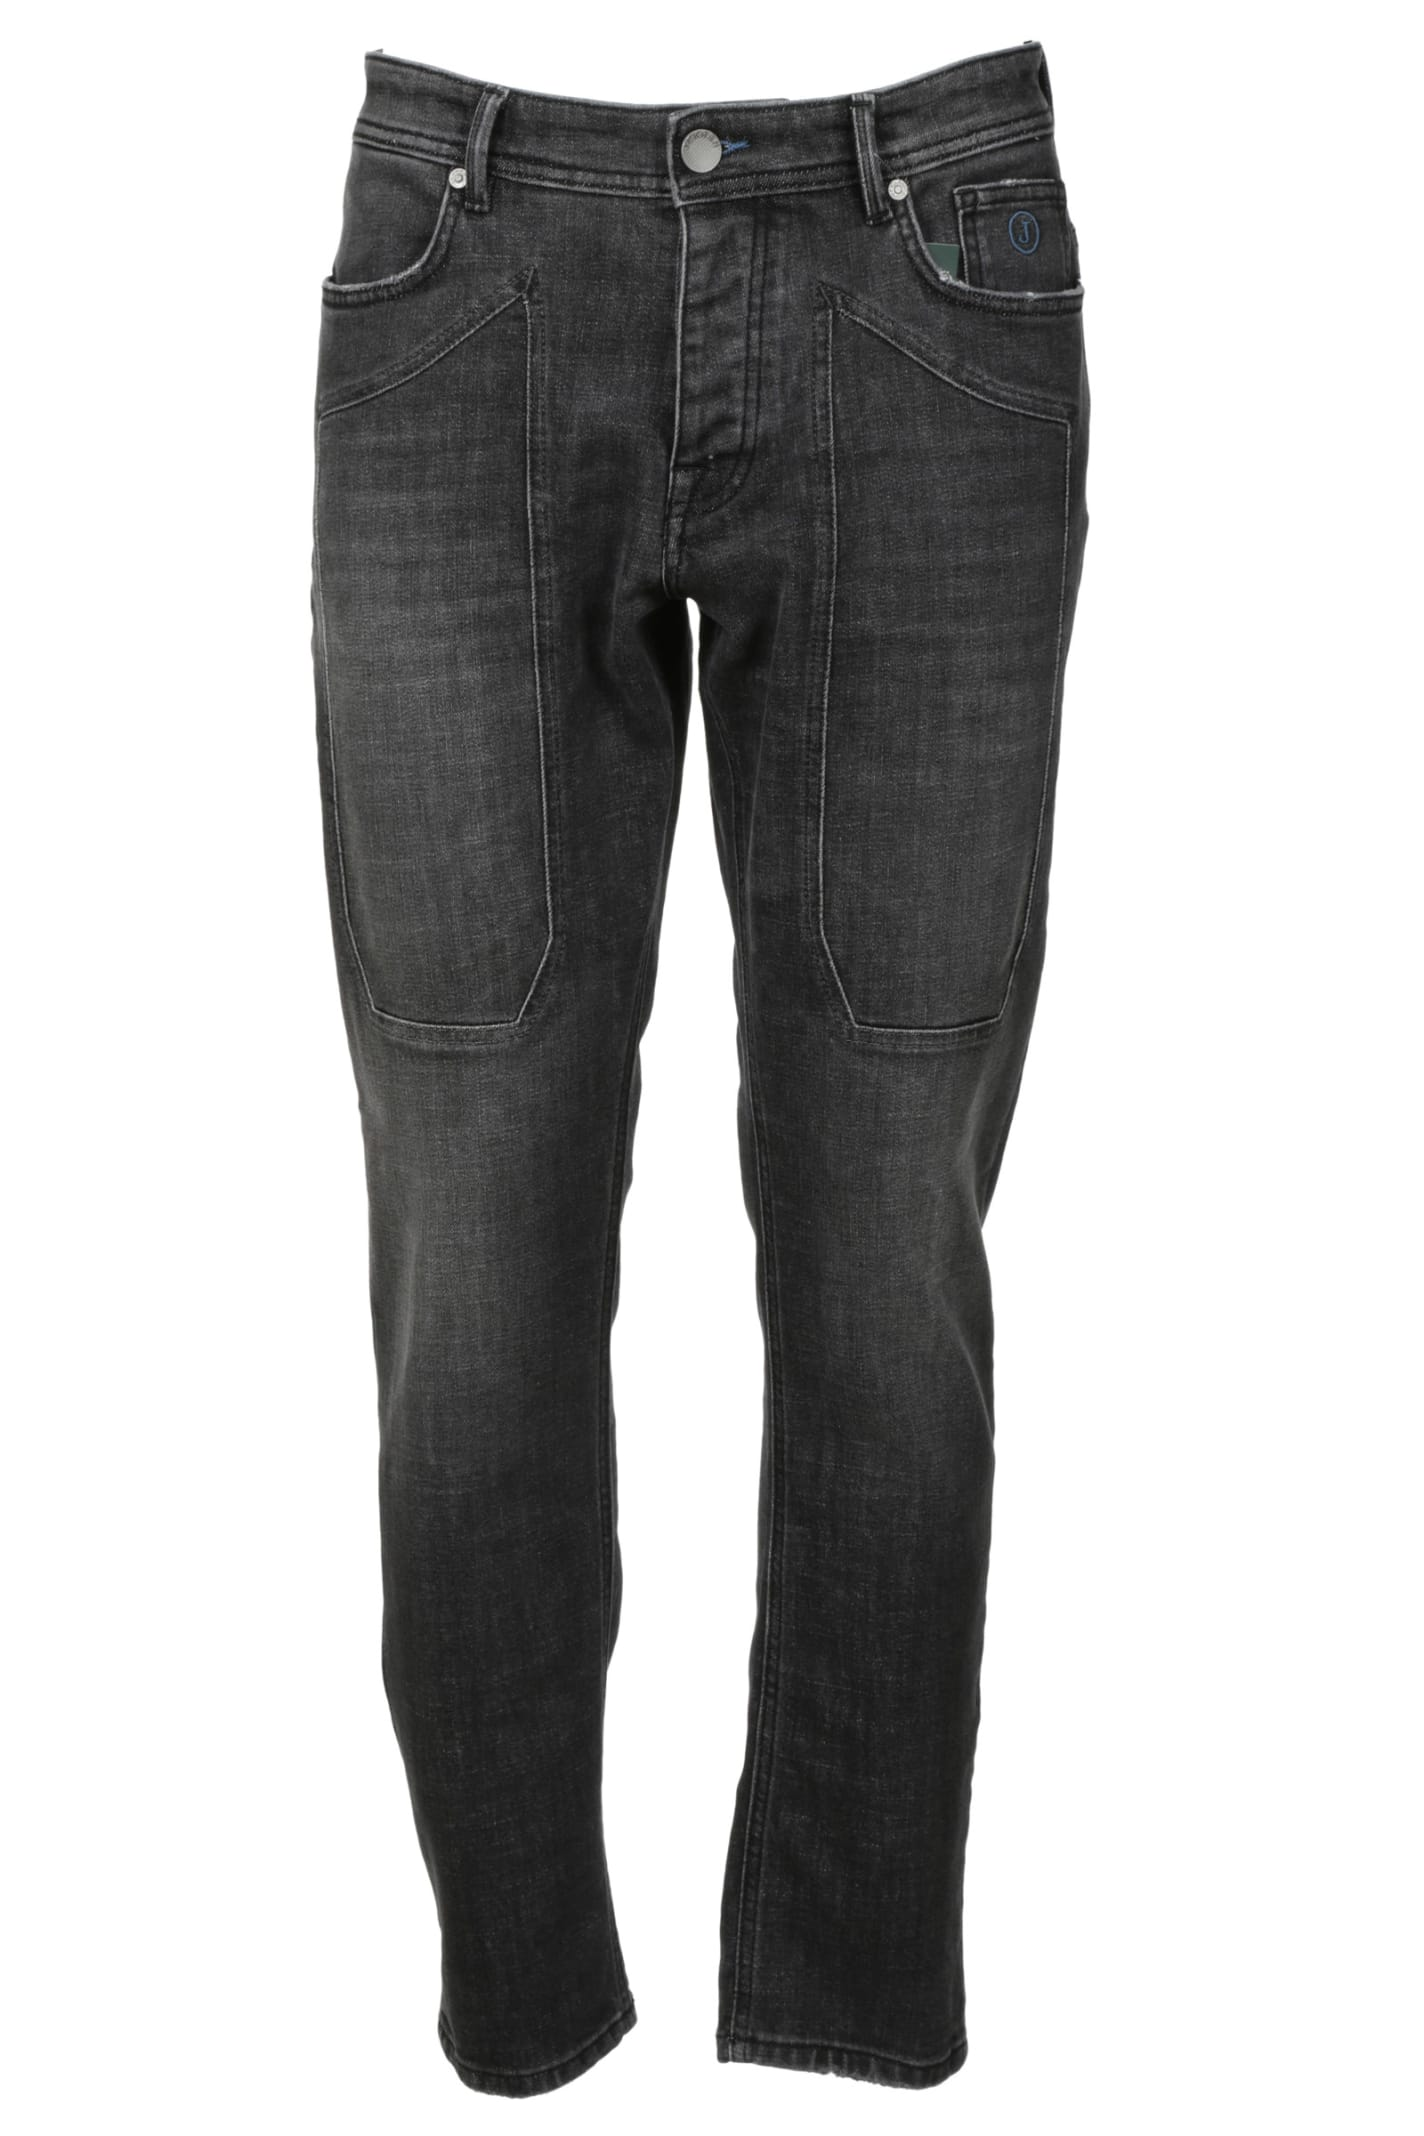 5 Pockets Patch Tapered Jeans